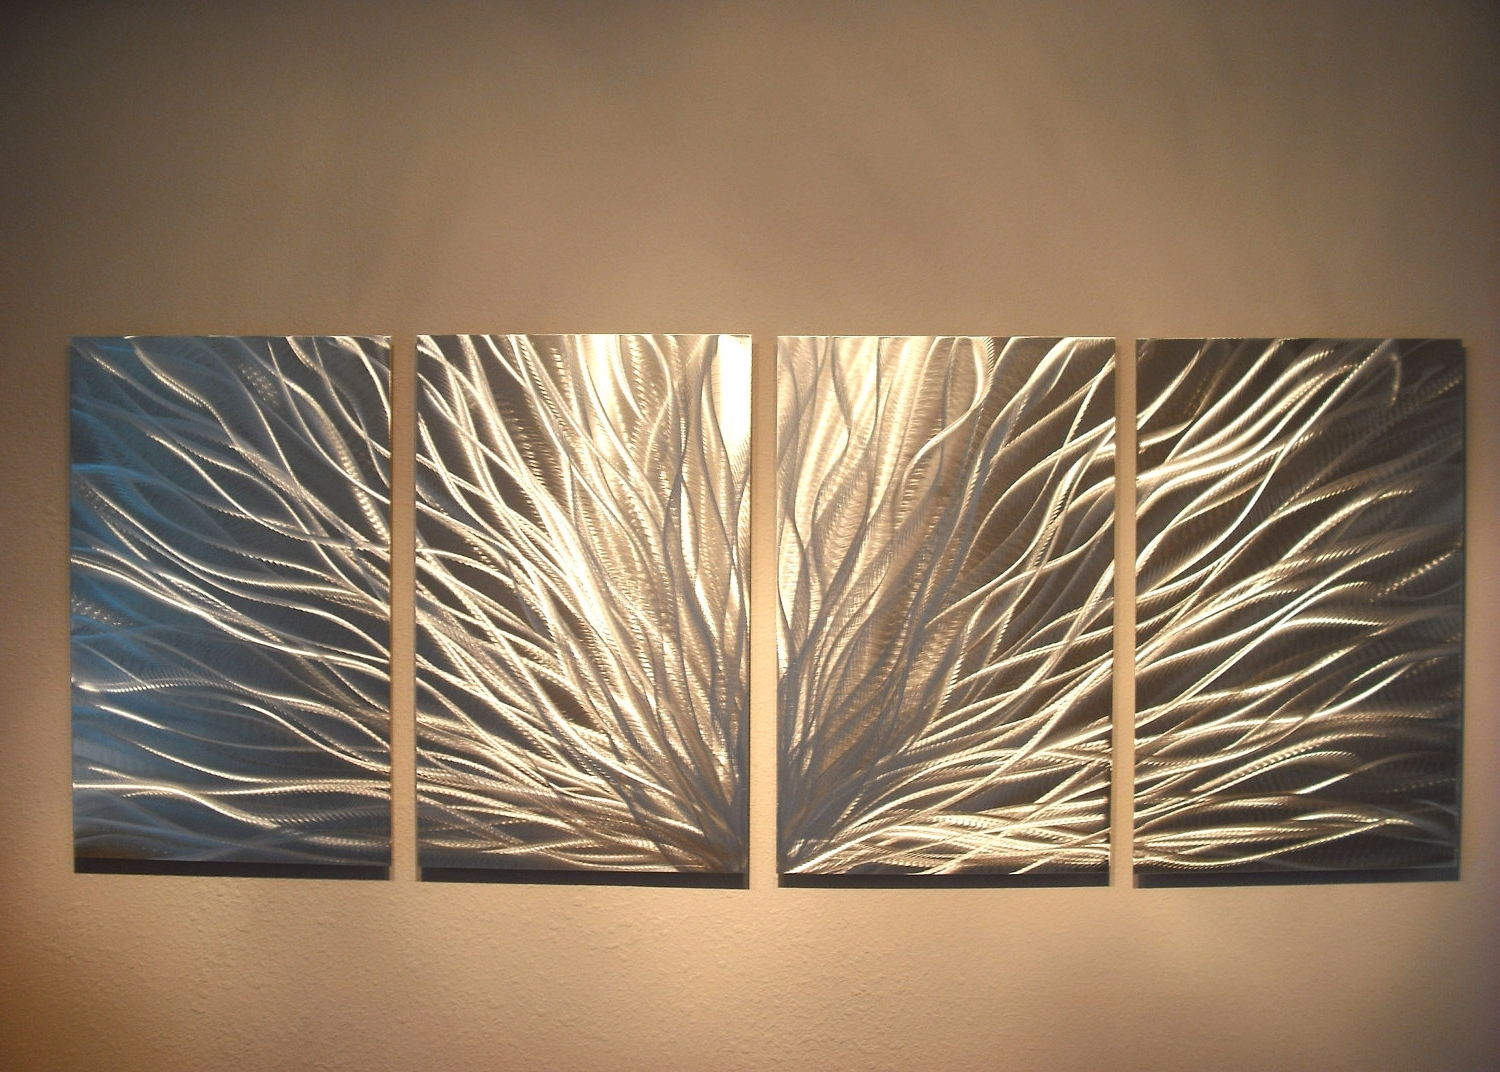 Metal Wall Art With Trendy Radiance – Abstract Metal Wall Art Contemporary Modern Decor (View 8 of 15)